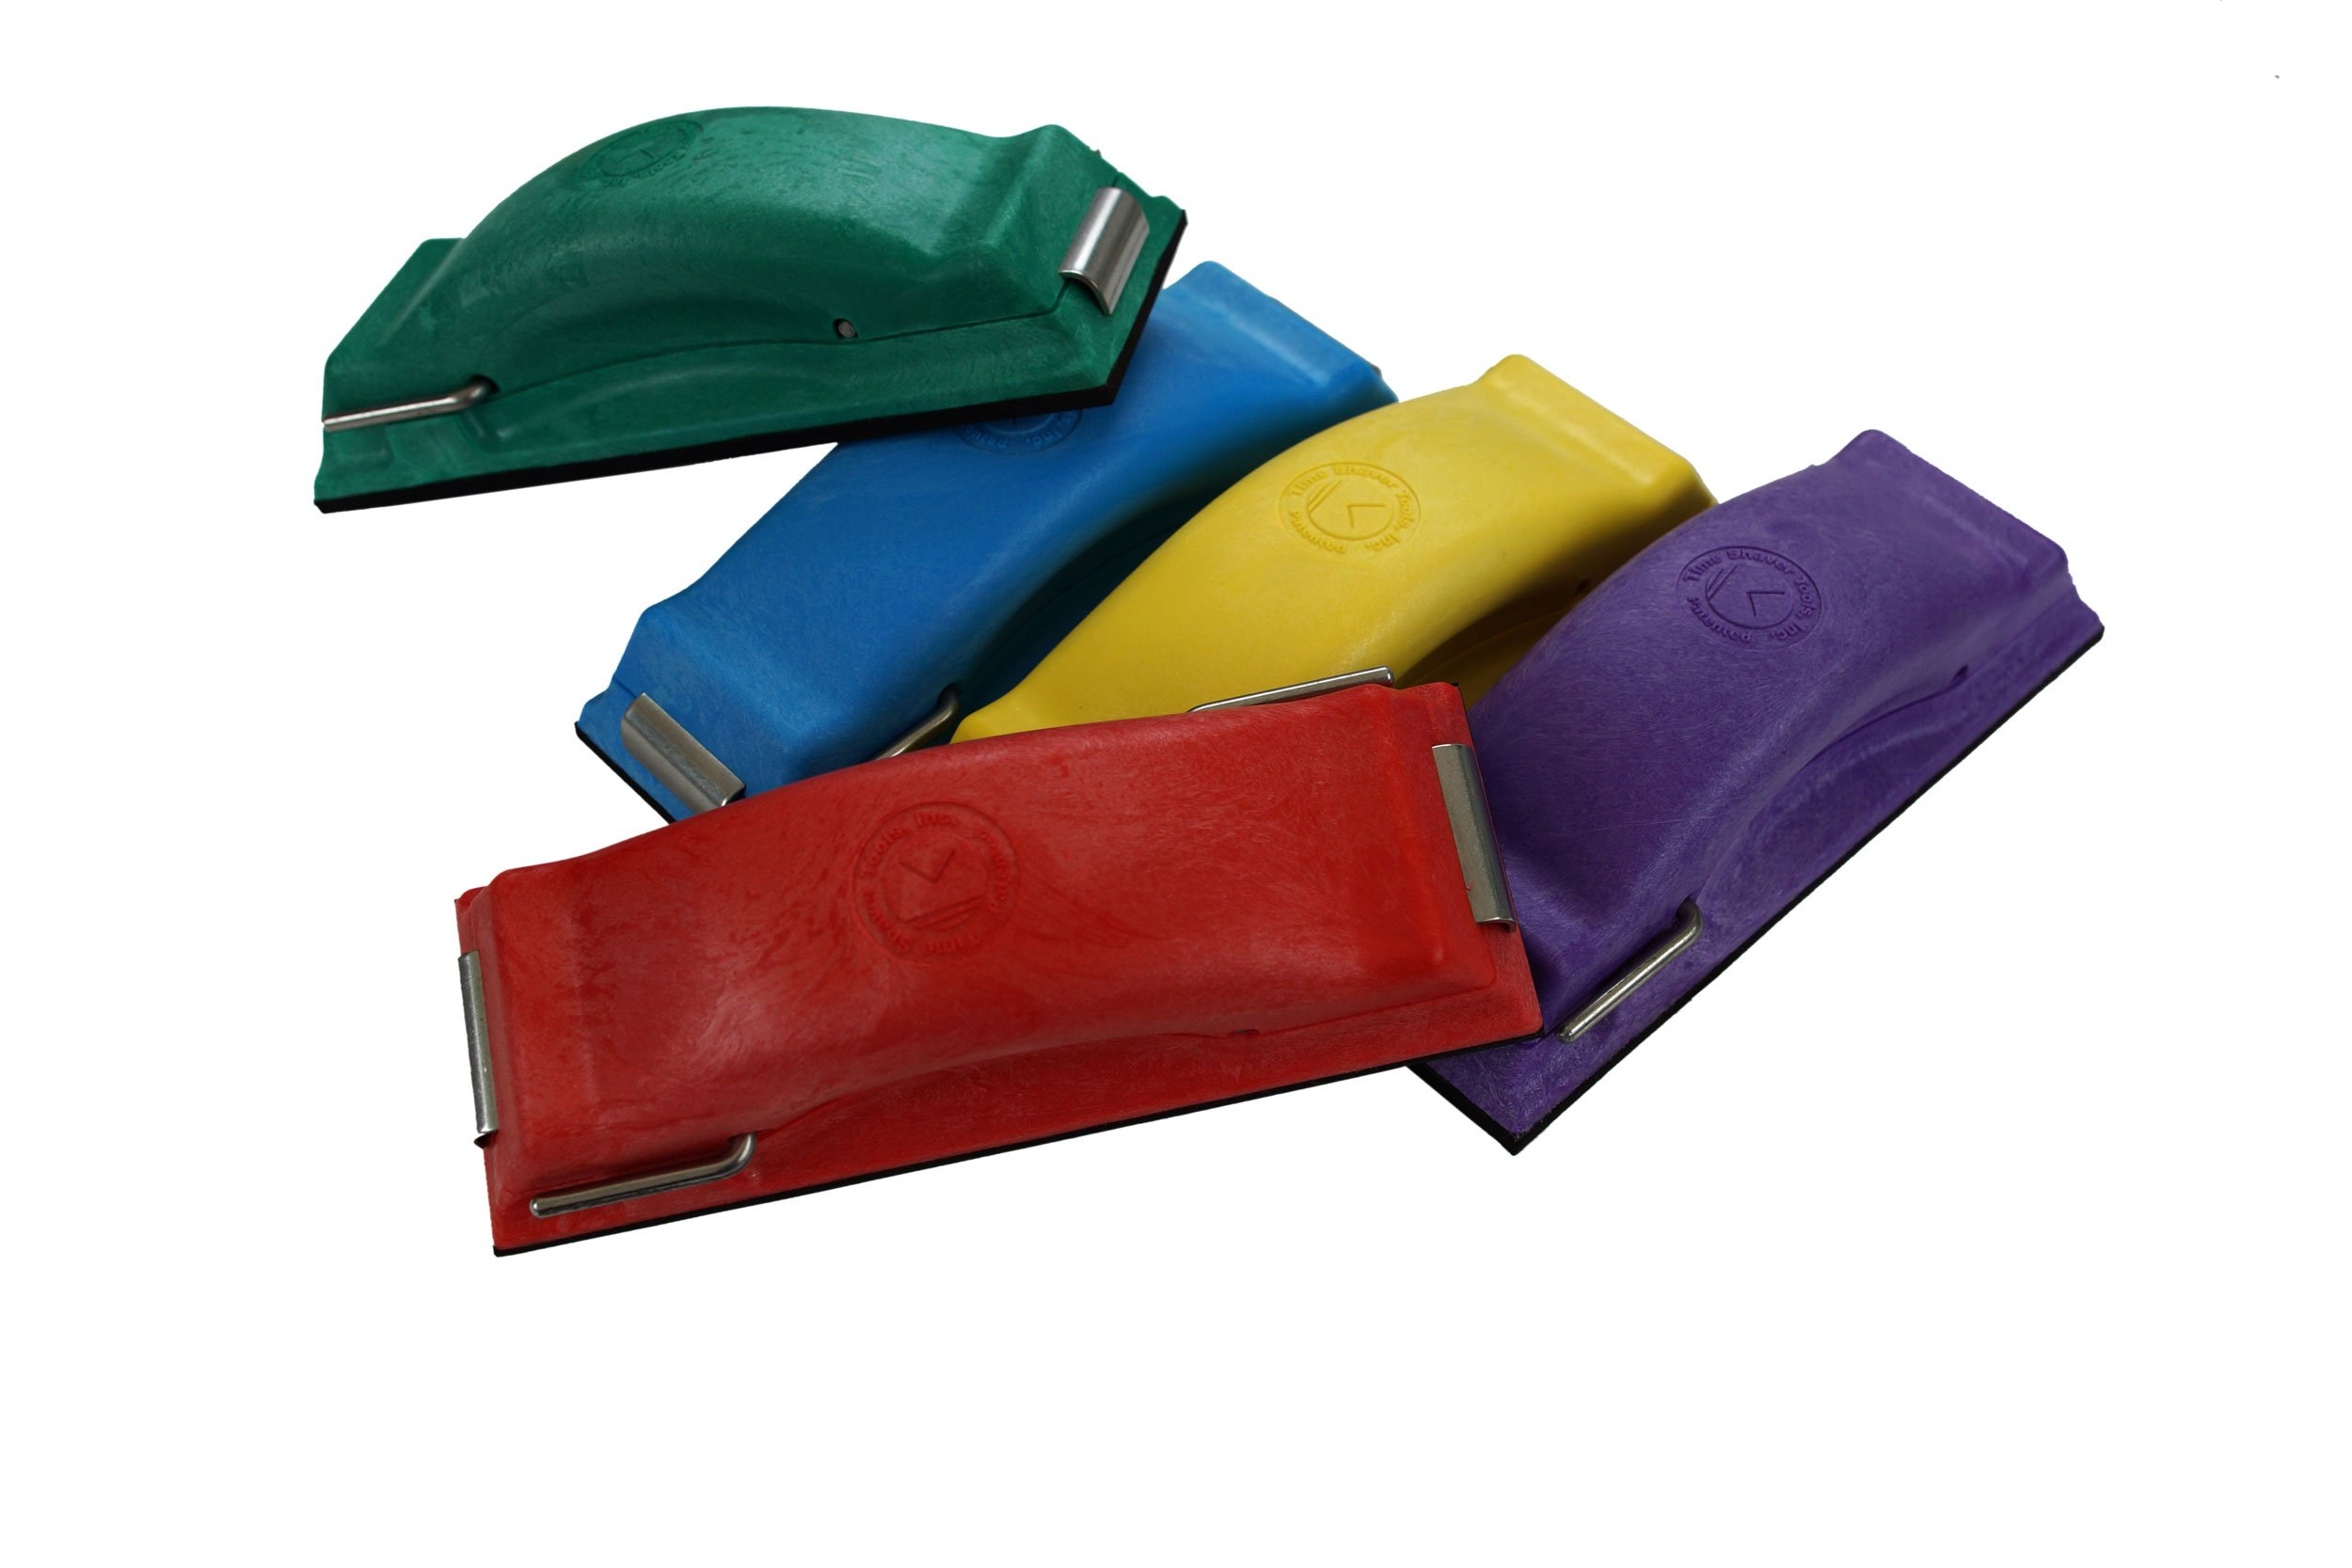 Time Shaver Tools Preppin' Weapon Ergonomic Sanding Block, for Wet and Dry Sanding! Easy to Load, Plain Paper Sander! Complete Set of 5 Color Coded Hand Sanders in Yellow, Blue, Green, Purple and Red. by Preppin' Weapon